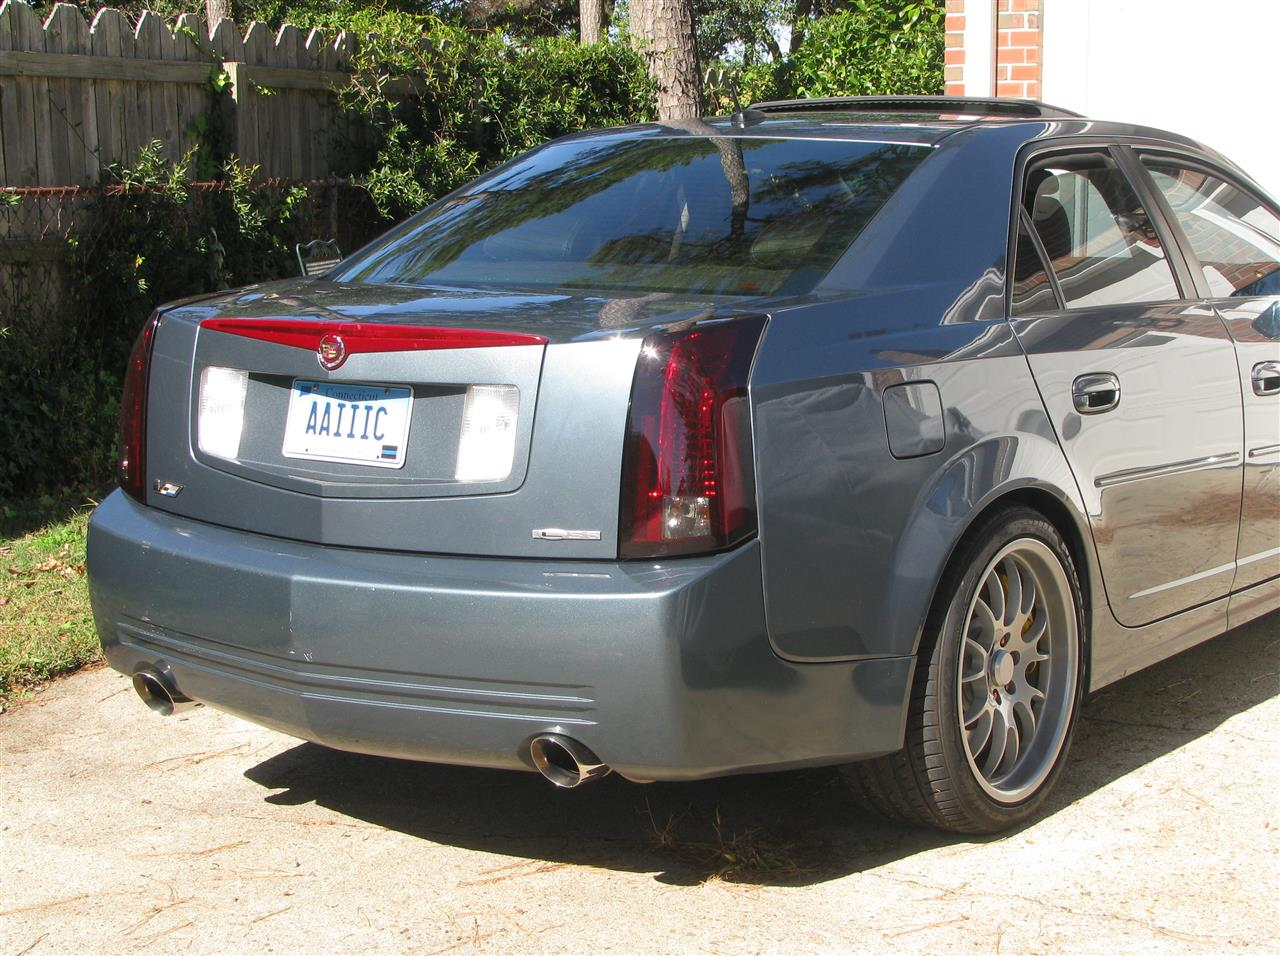 Cadillac San Antonio >> FEELER - interest in an LED tail light group buy? - Page 12 - LS1TECH - Camaro and Firebird ...